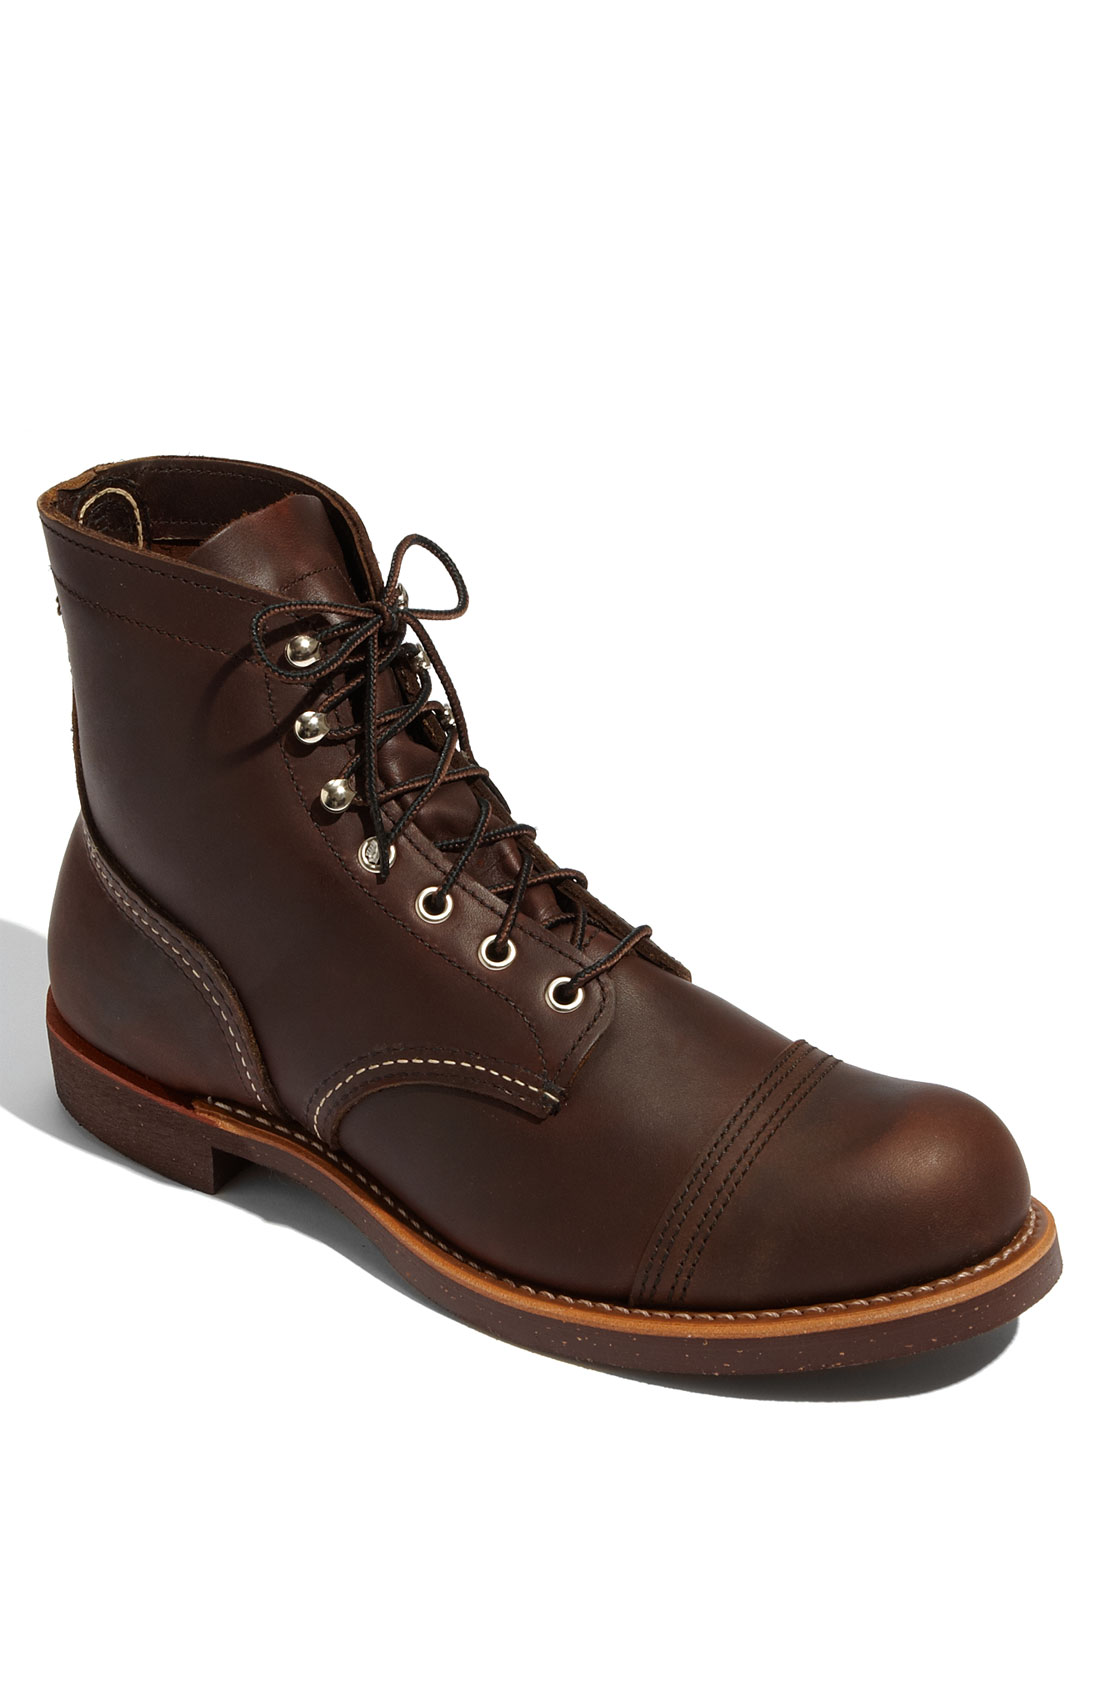 Where To Buy Red Wing Boots qVuarv7I